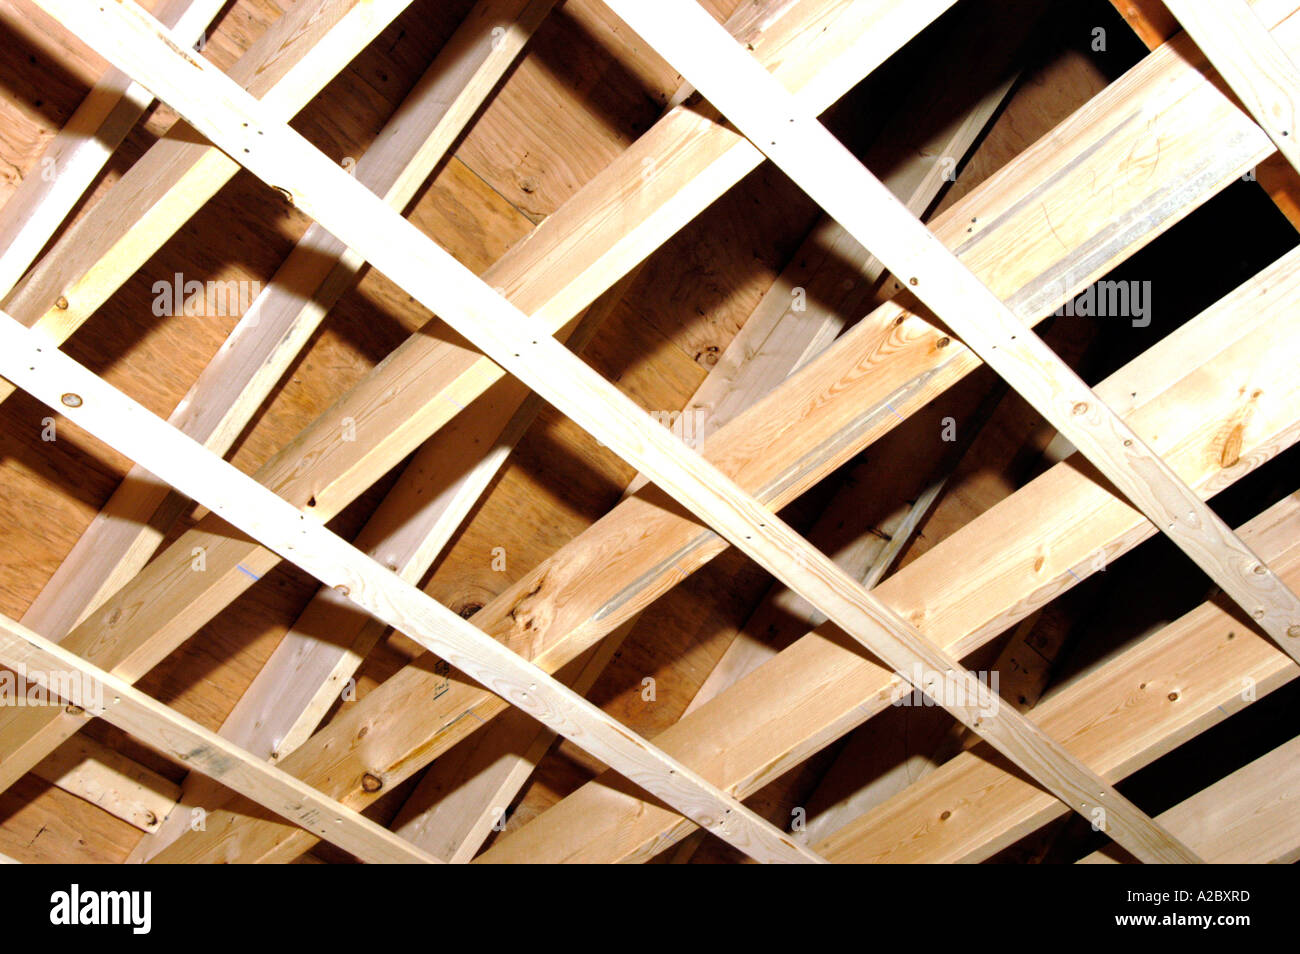 Furring Strips And Roof Joists In A Remodeling Project